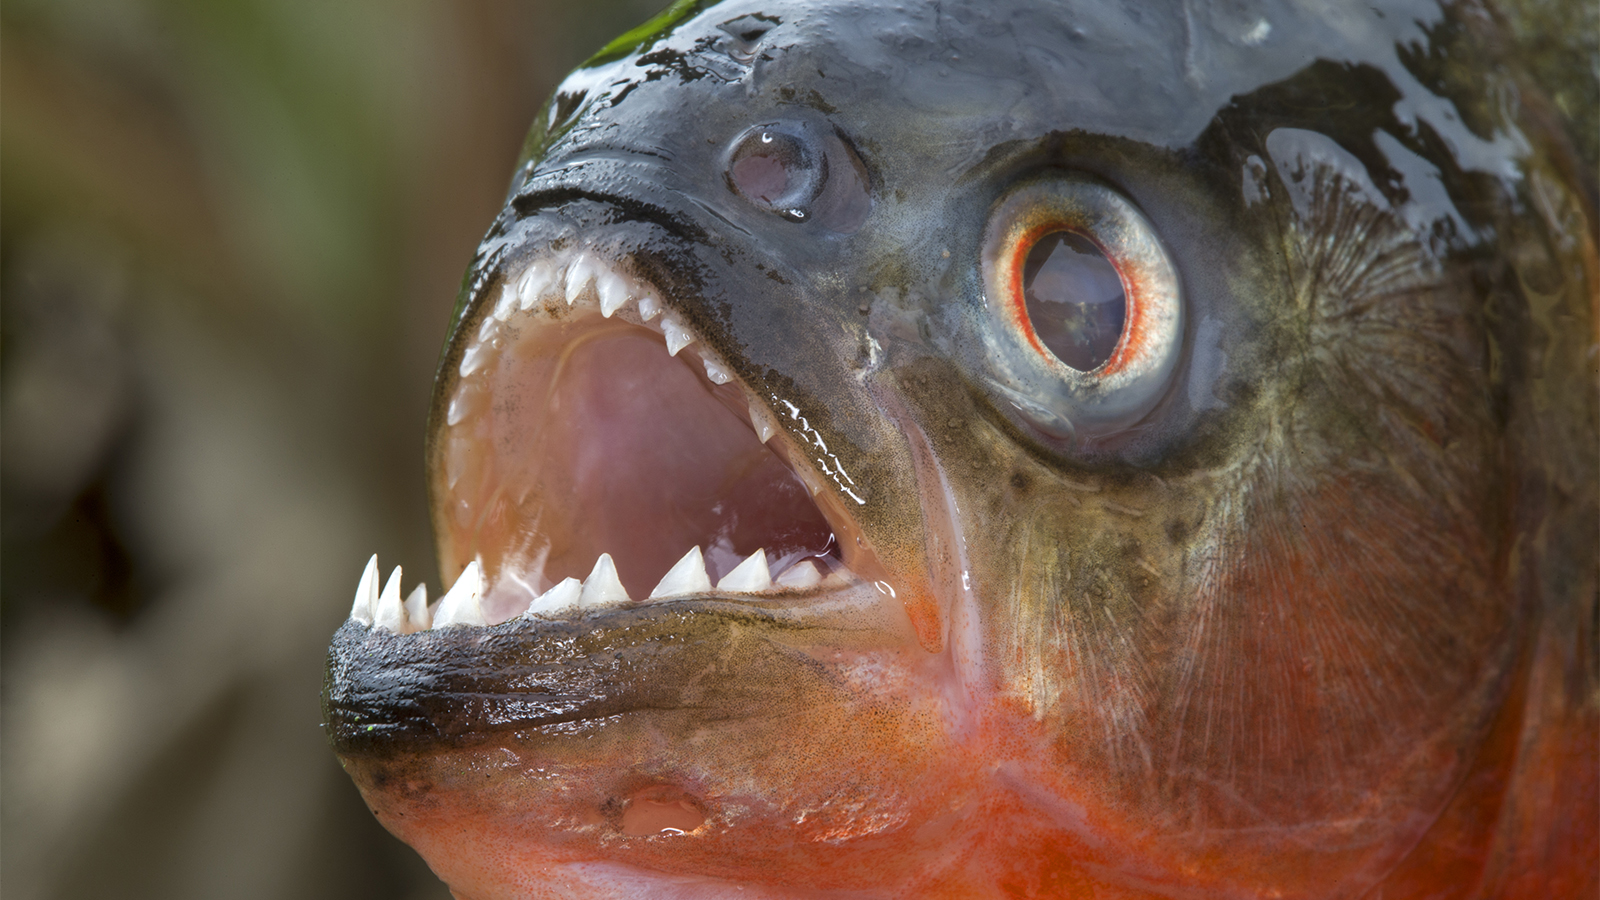 Piranhas: Toothy Nippers With a Bad Reputation | HowStuffWorks